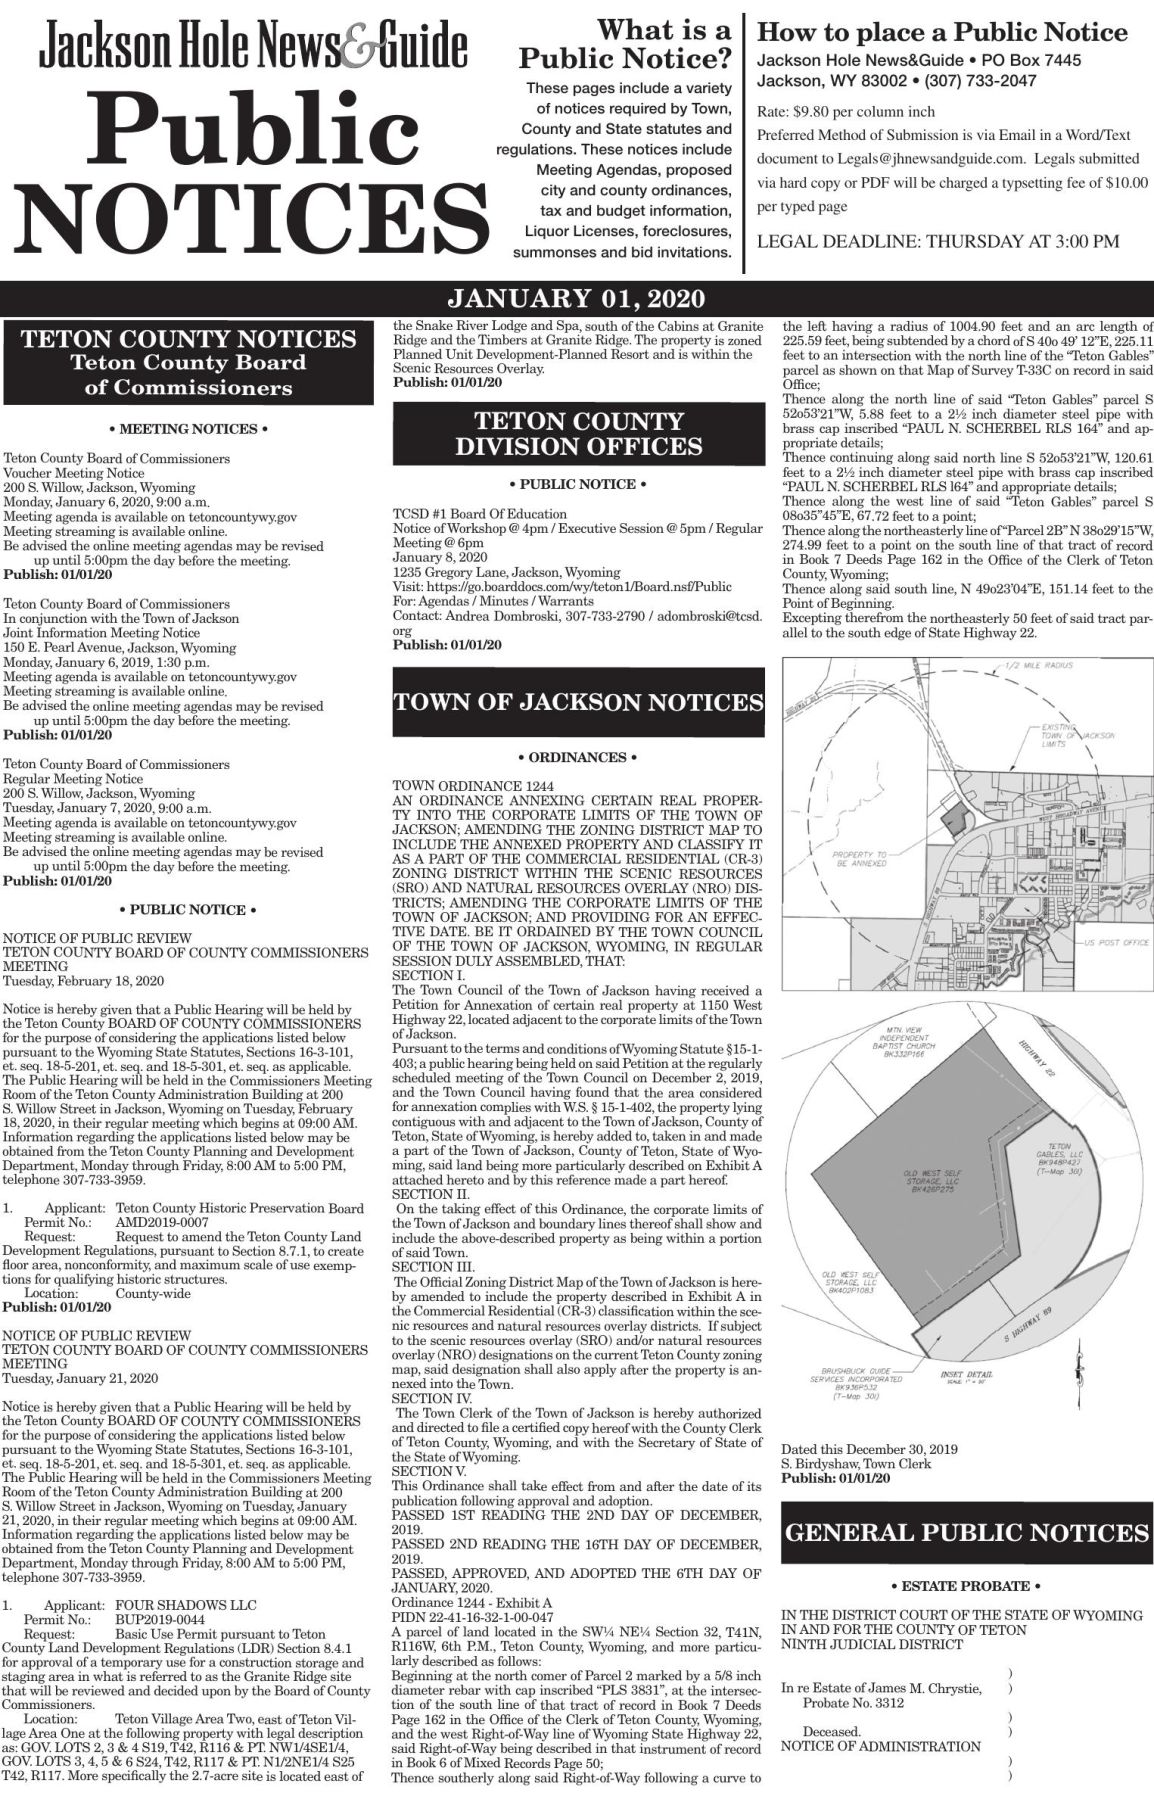 Public Notices, January 01, 2020